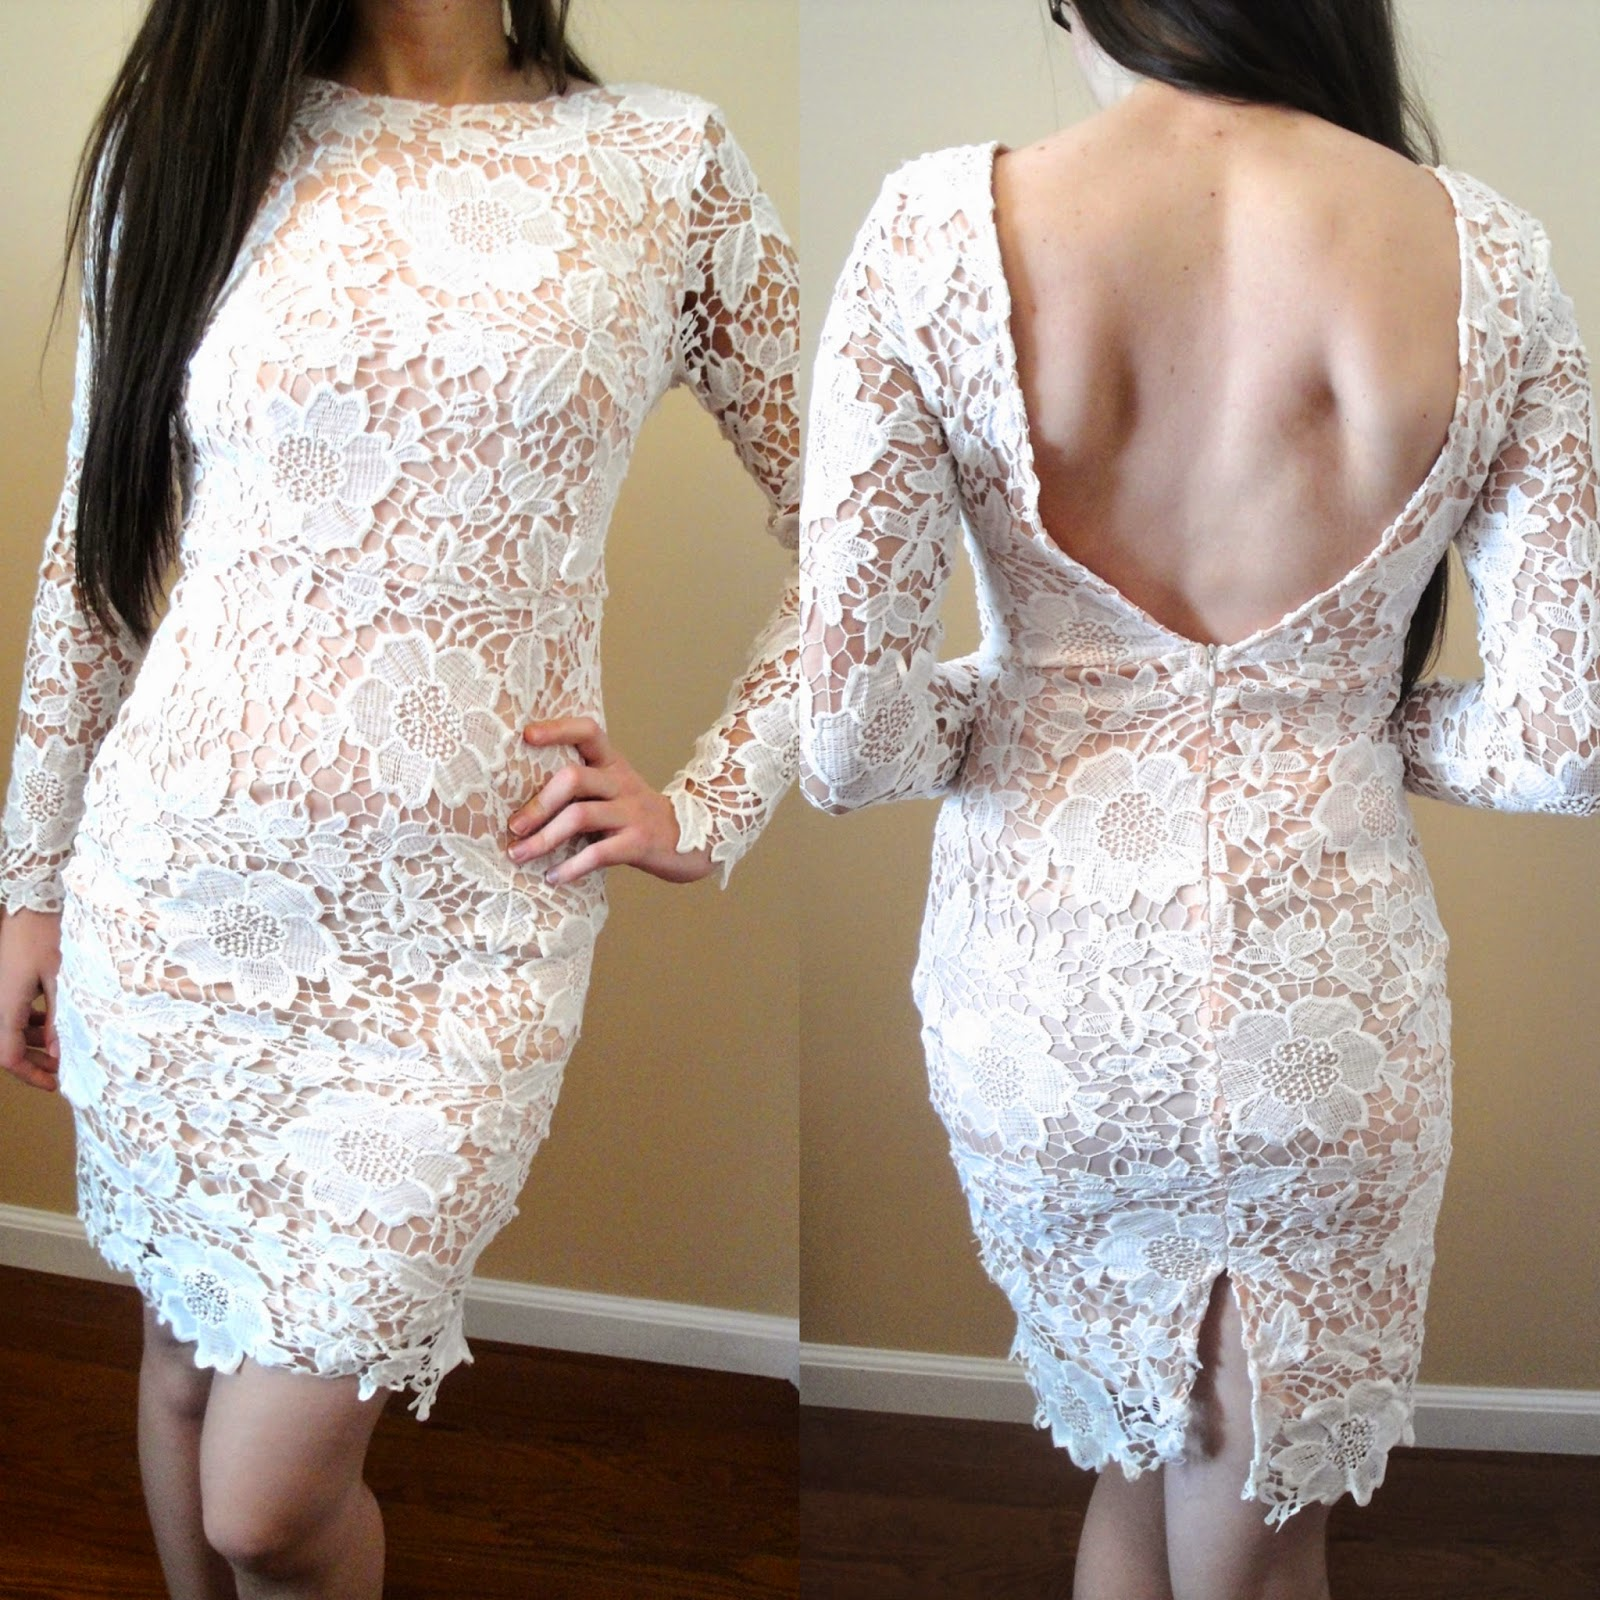 oasap clothing, lace dress, christmas lace dress, lace kimono, lace outfit, grey casual dress, pretty, oasap fashion, lace, black dress, little black dress,